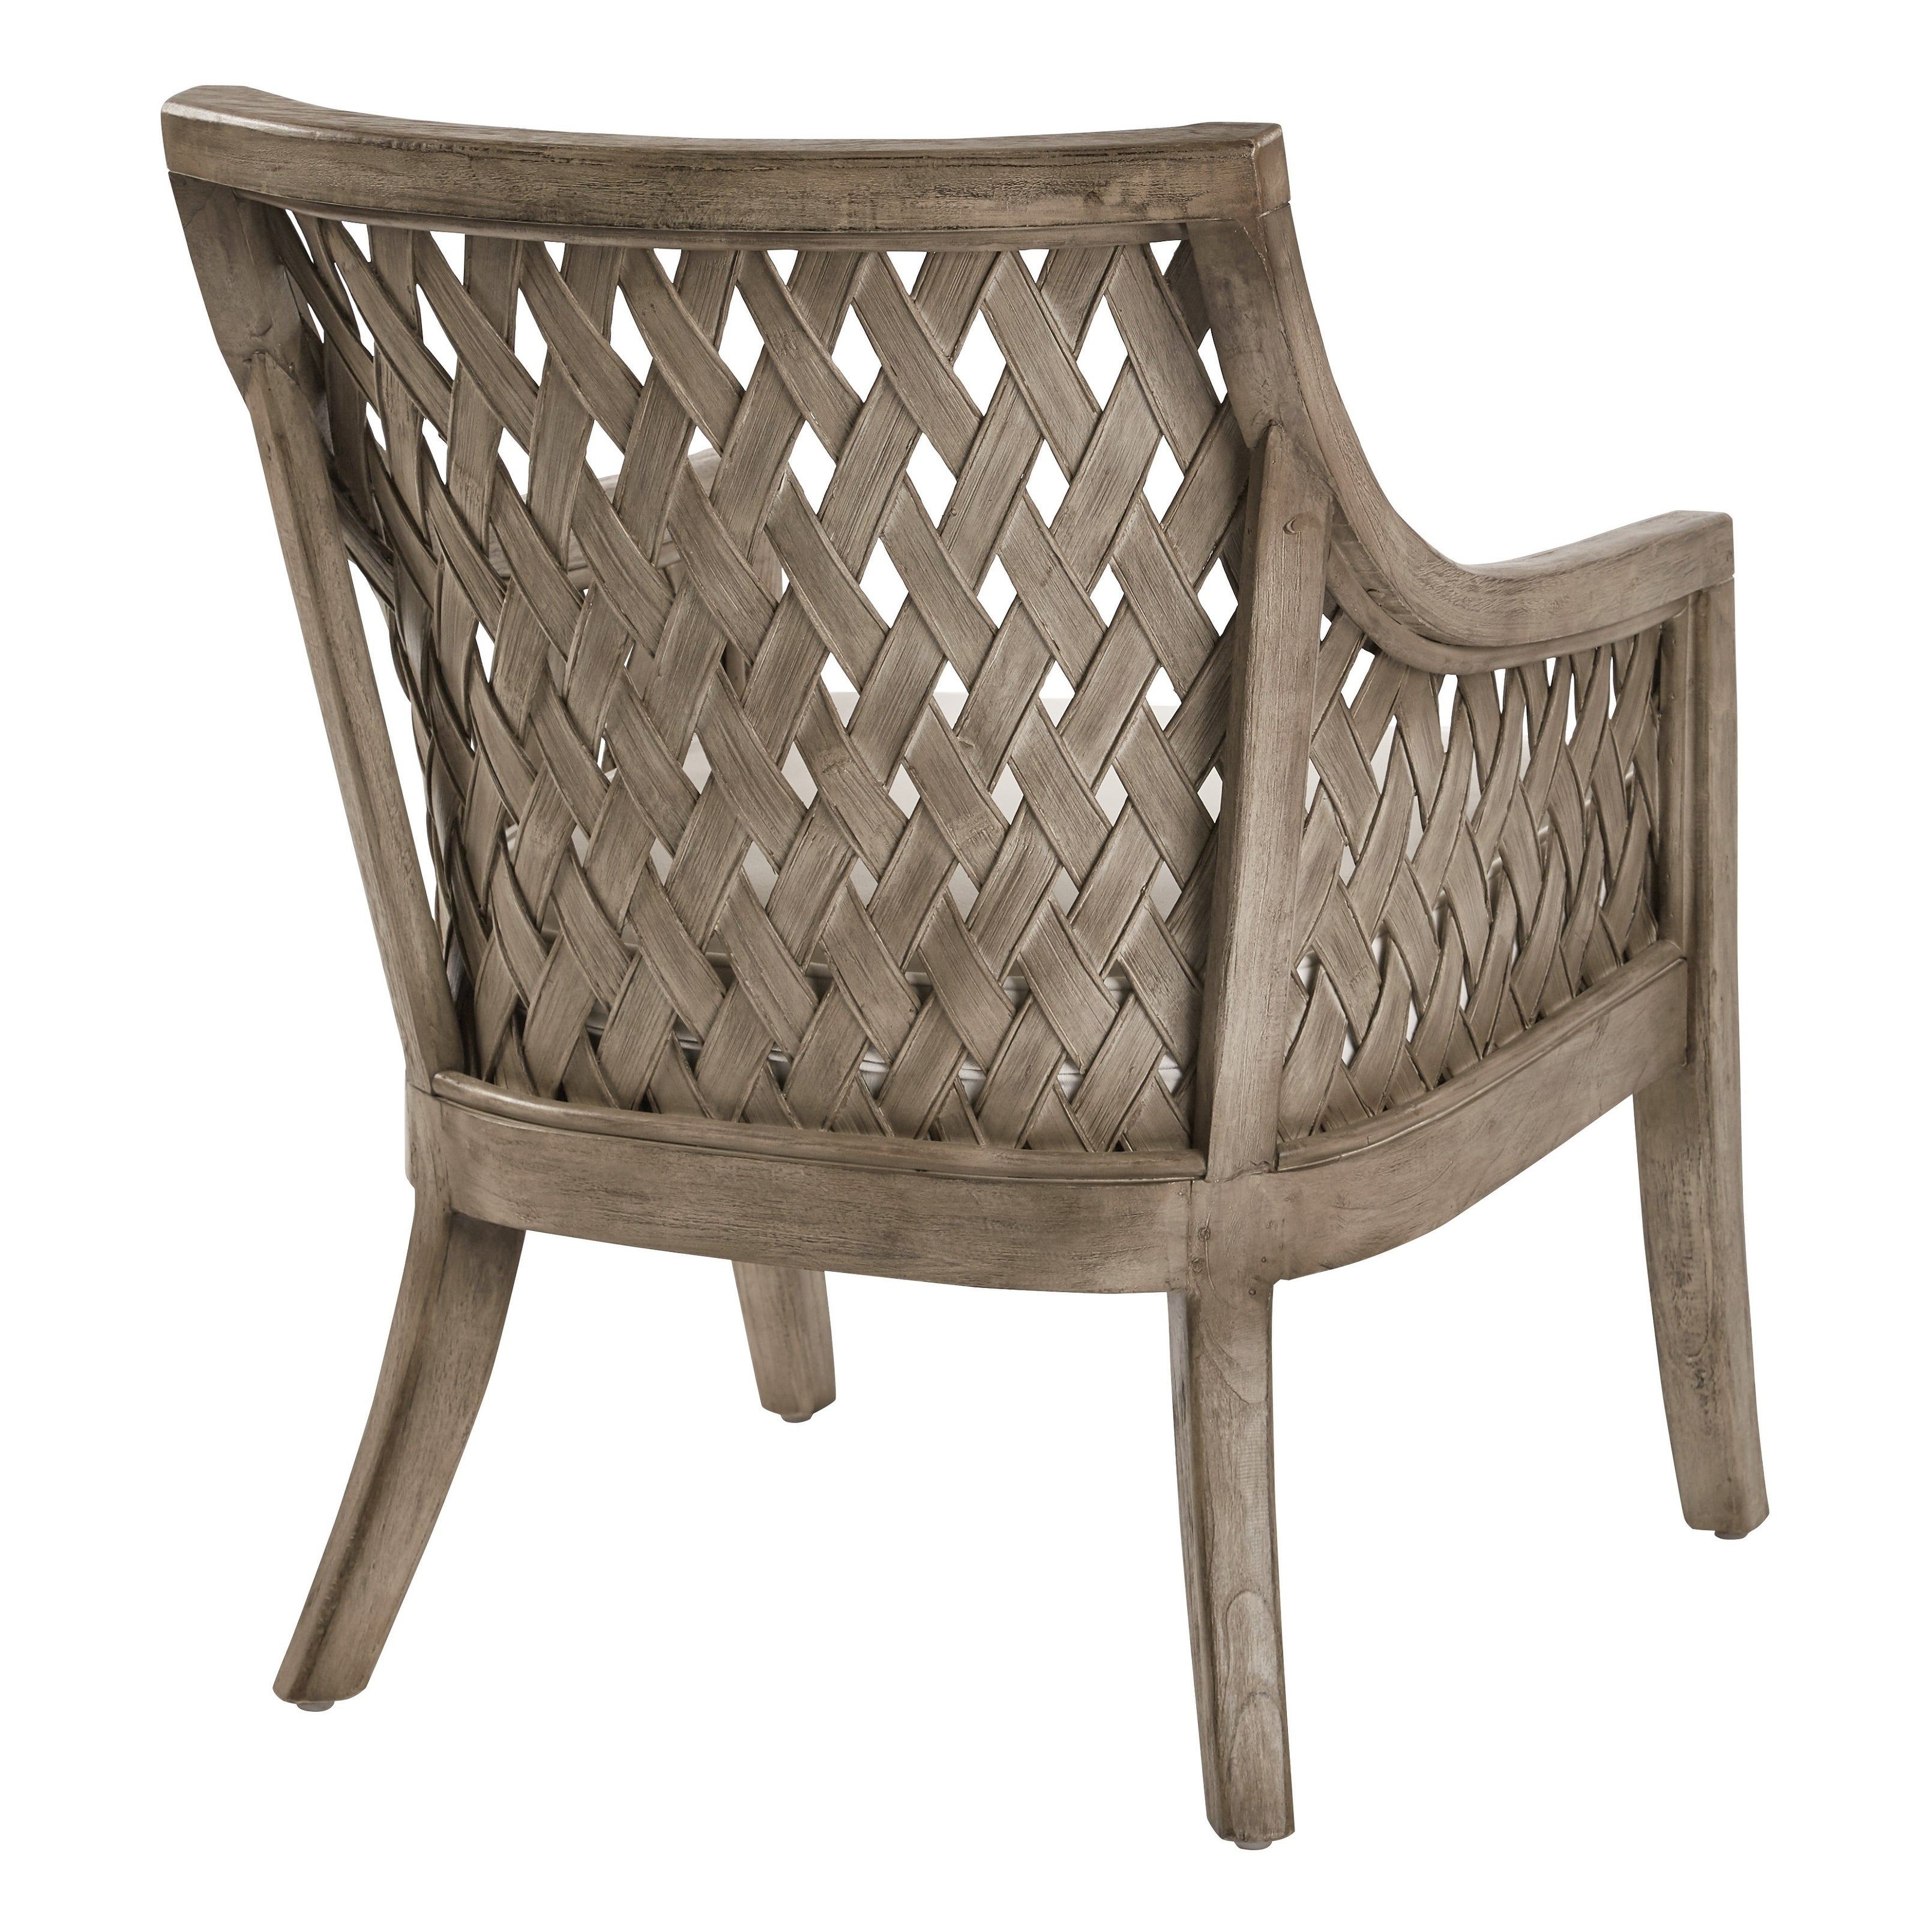 Shop OSP Designs Plantation Lounge Chair With Cushion   Free Shipping Today    Overstock.com   22639258